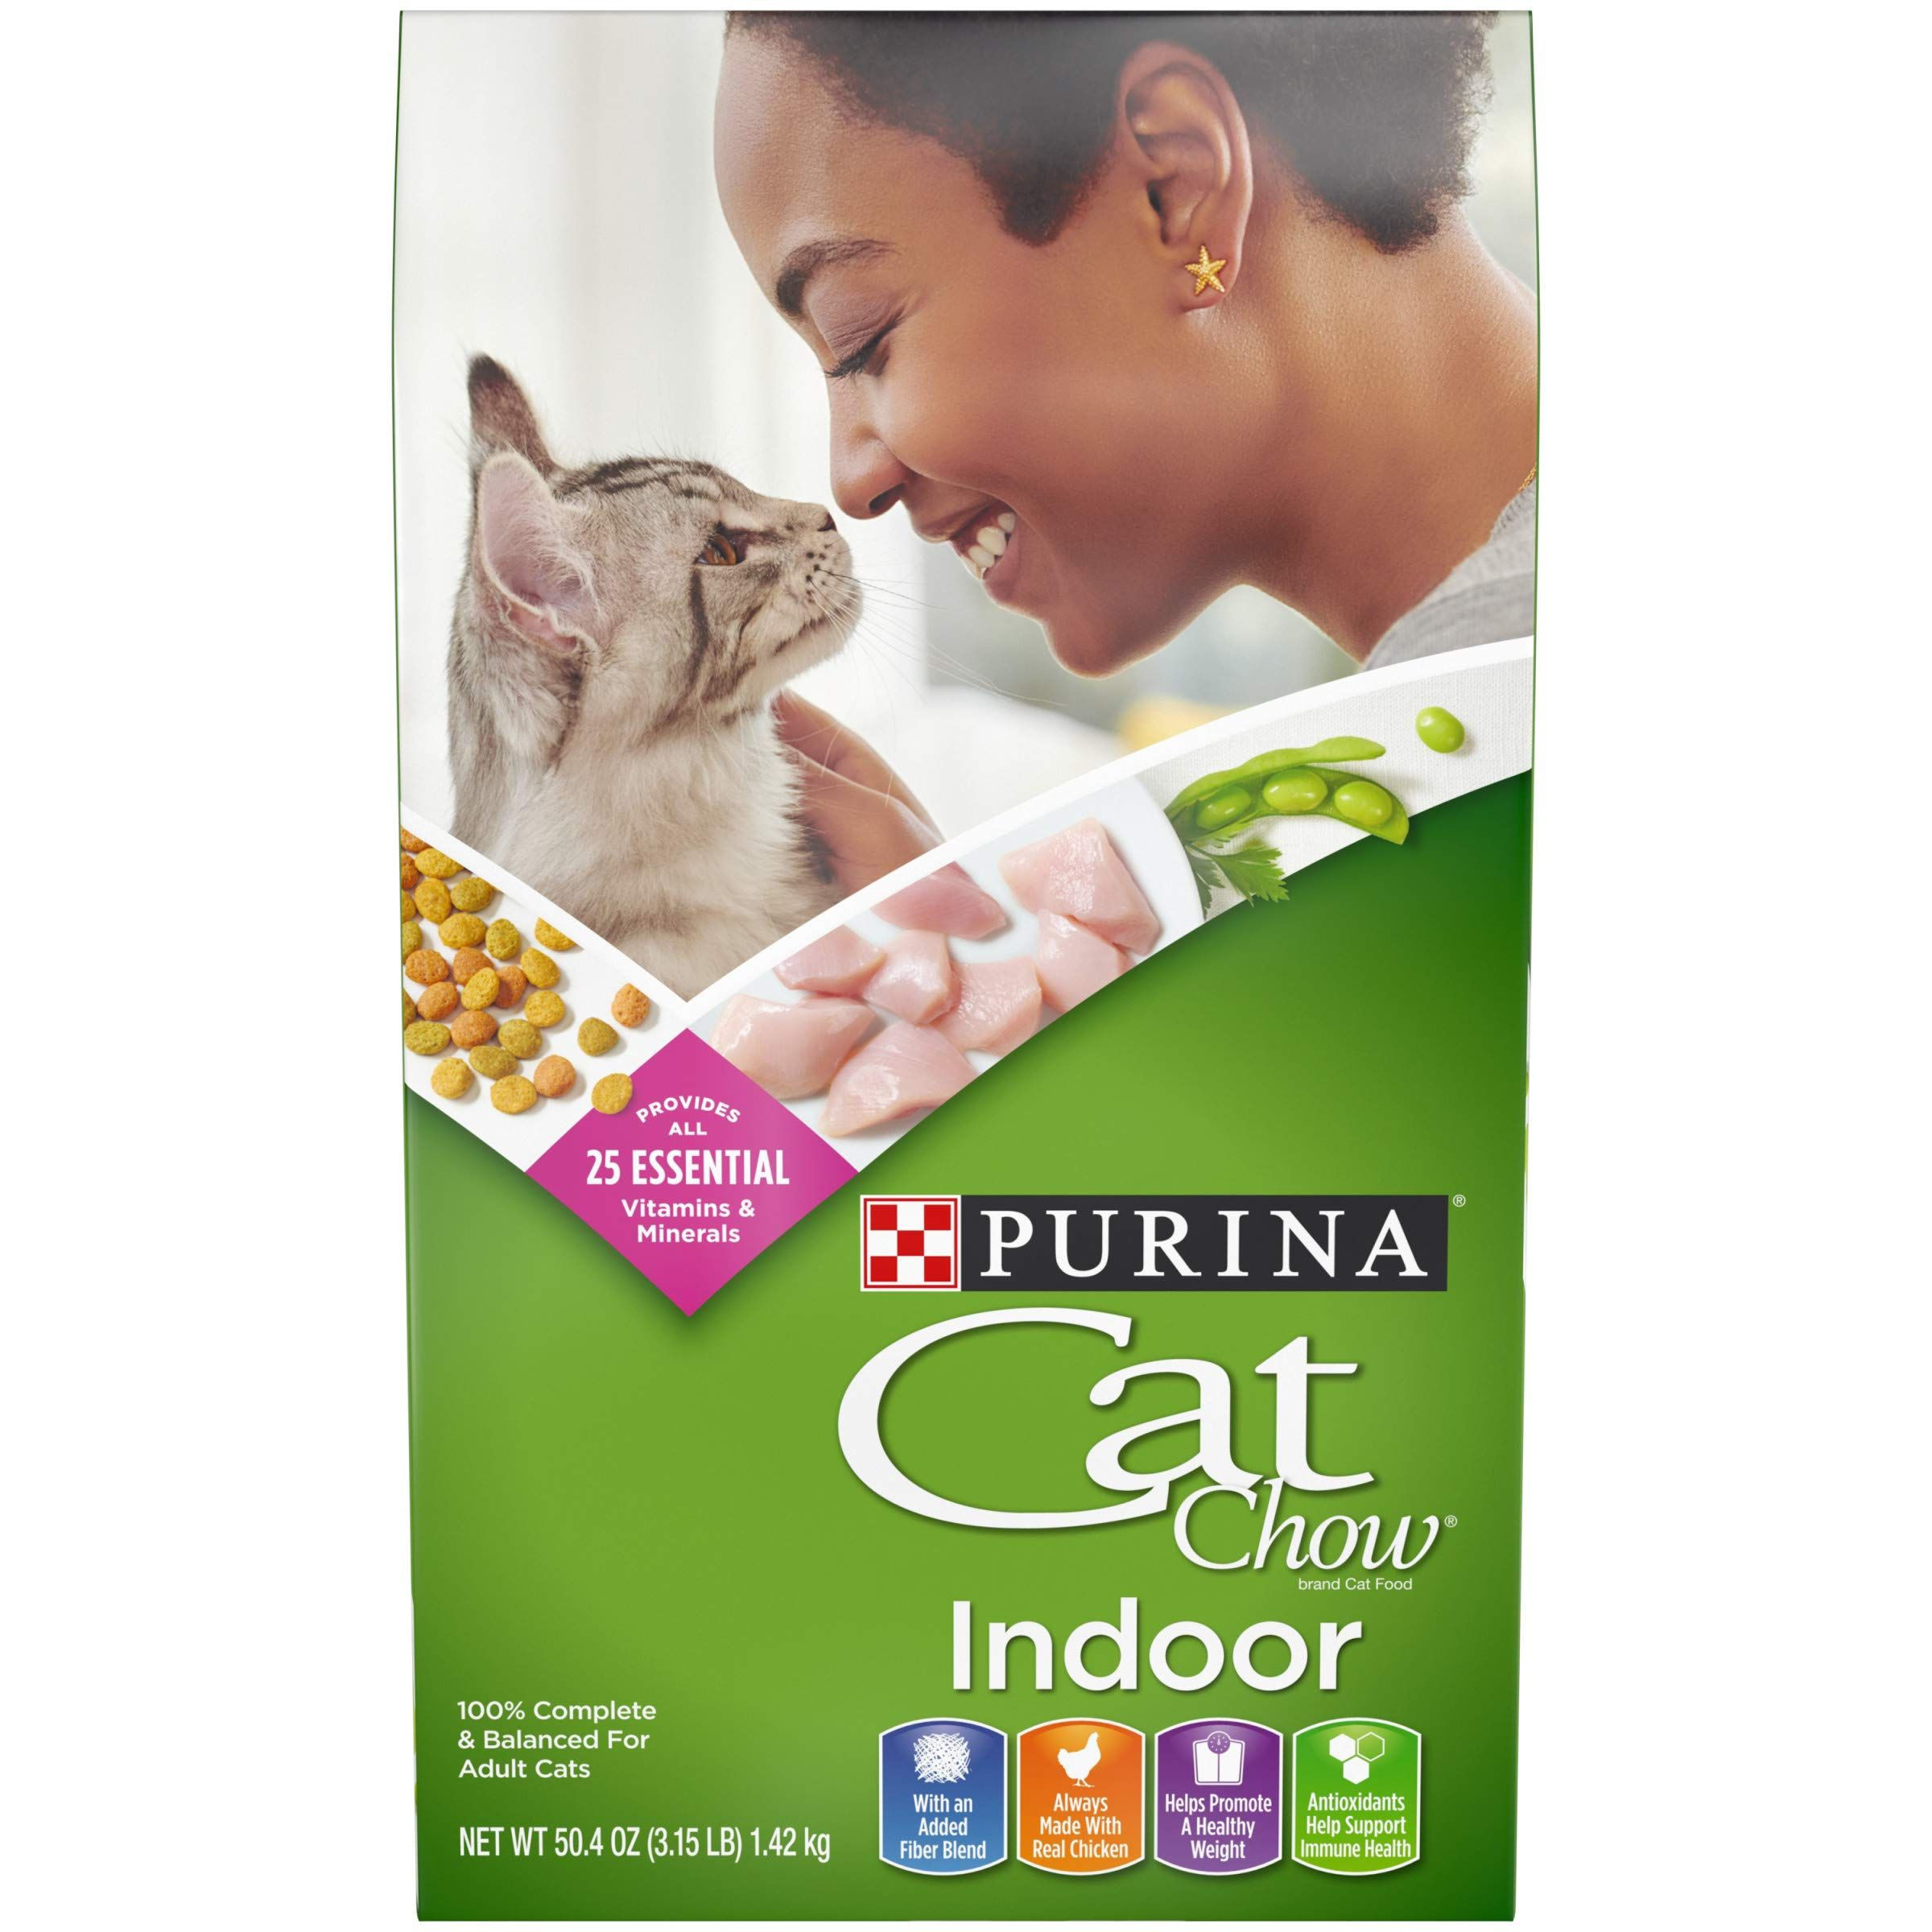 Purina Cat Chow Hairball Healthy Weight Indoor Dry Cat Food Indoor 3 15 Pound Pack Of 4 More Info Could Be Foun In 2020 Cat Chow Dry Cat Food Cat Pet Supplies